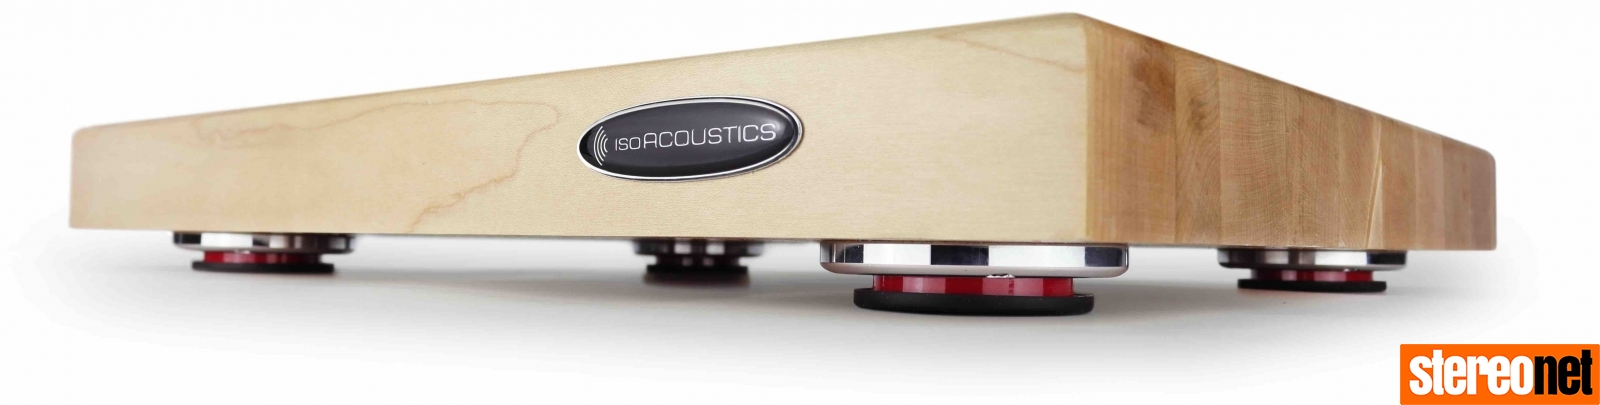 IsoAcoustics DELOS isolation platform